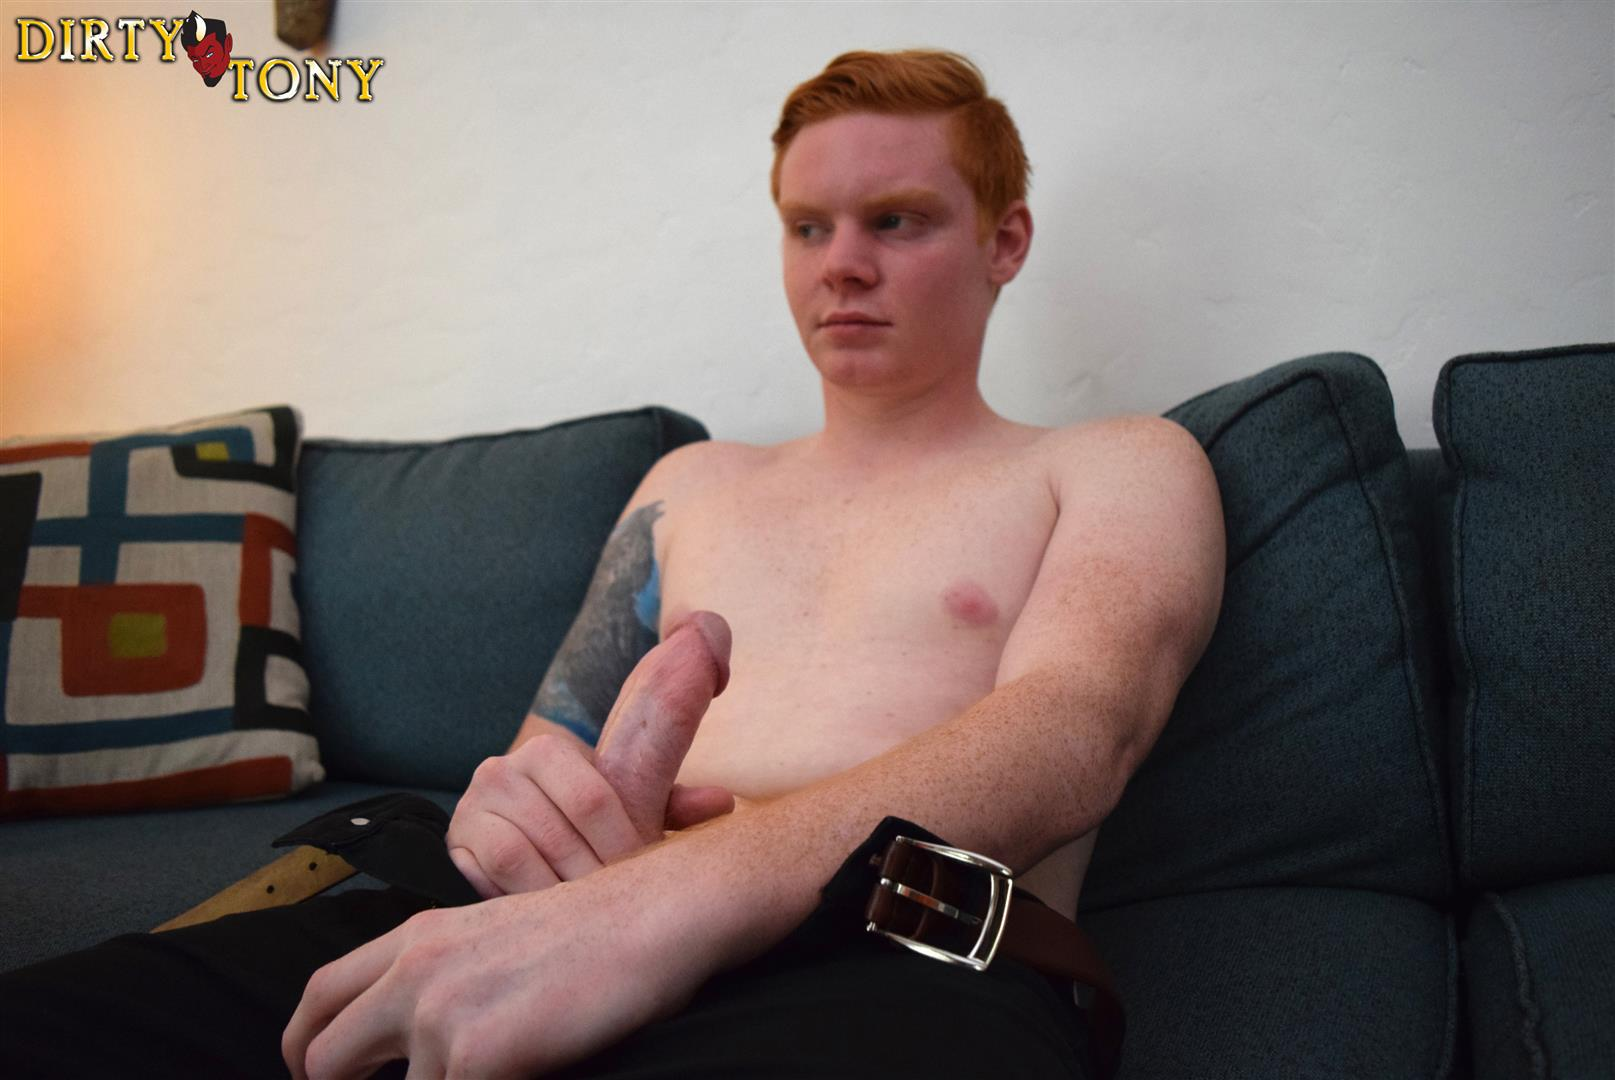 Dirty Tony Max Breeker Redheaded Twink Masturbation Amateur Gay Porn 03 Bisexual 19 Year Old Redheaded Twink Auditions For Gay Porn